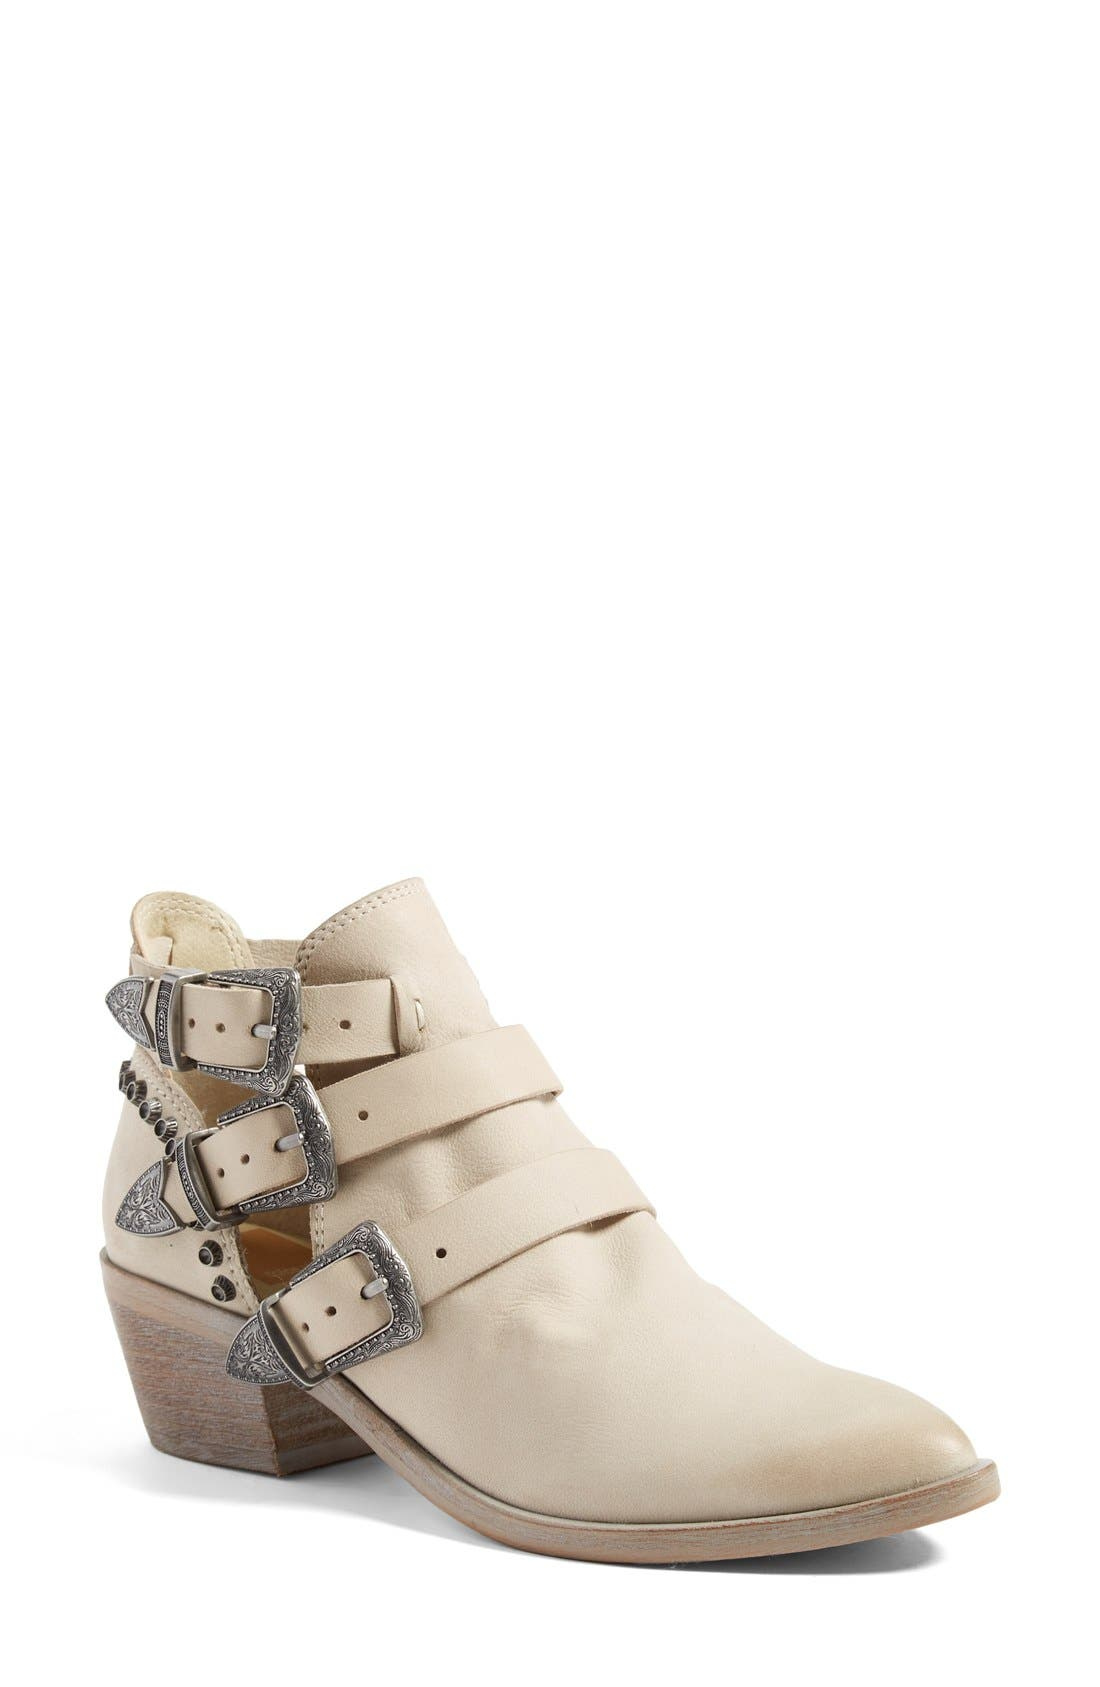 Alternate Image 1 Selected - Dolce Vita 'Spur' Buckle Strap Bootie (Women)